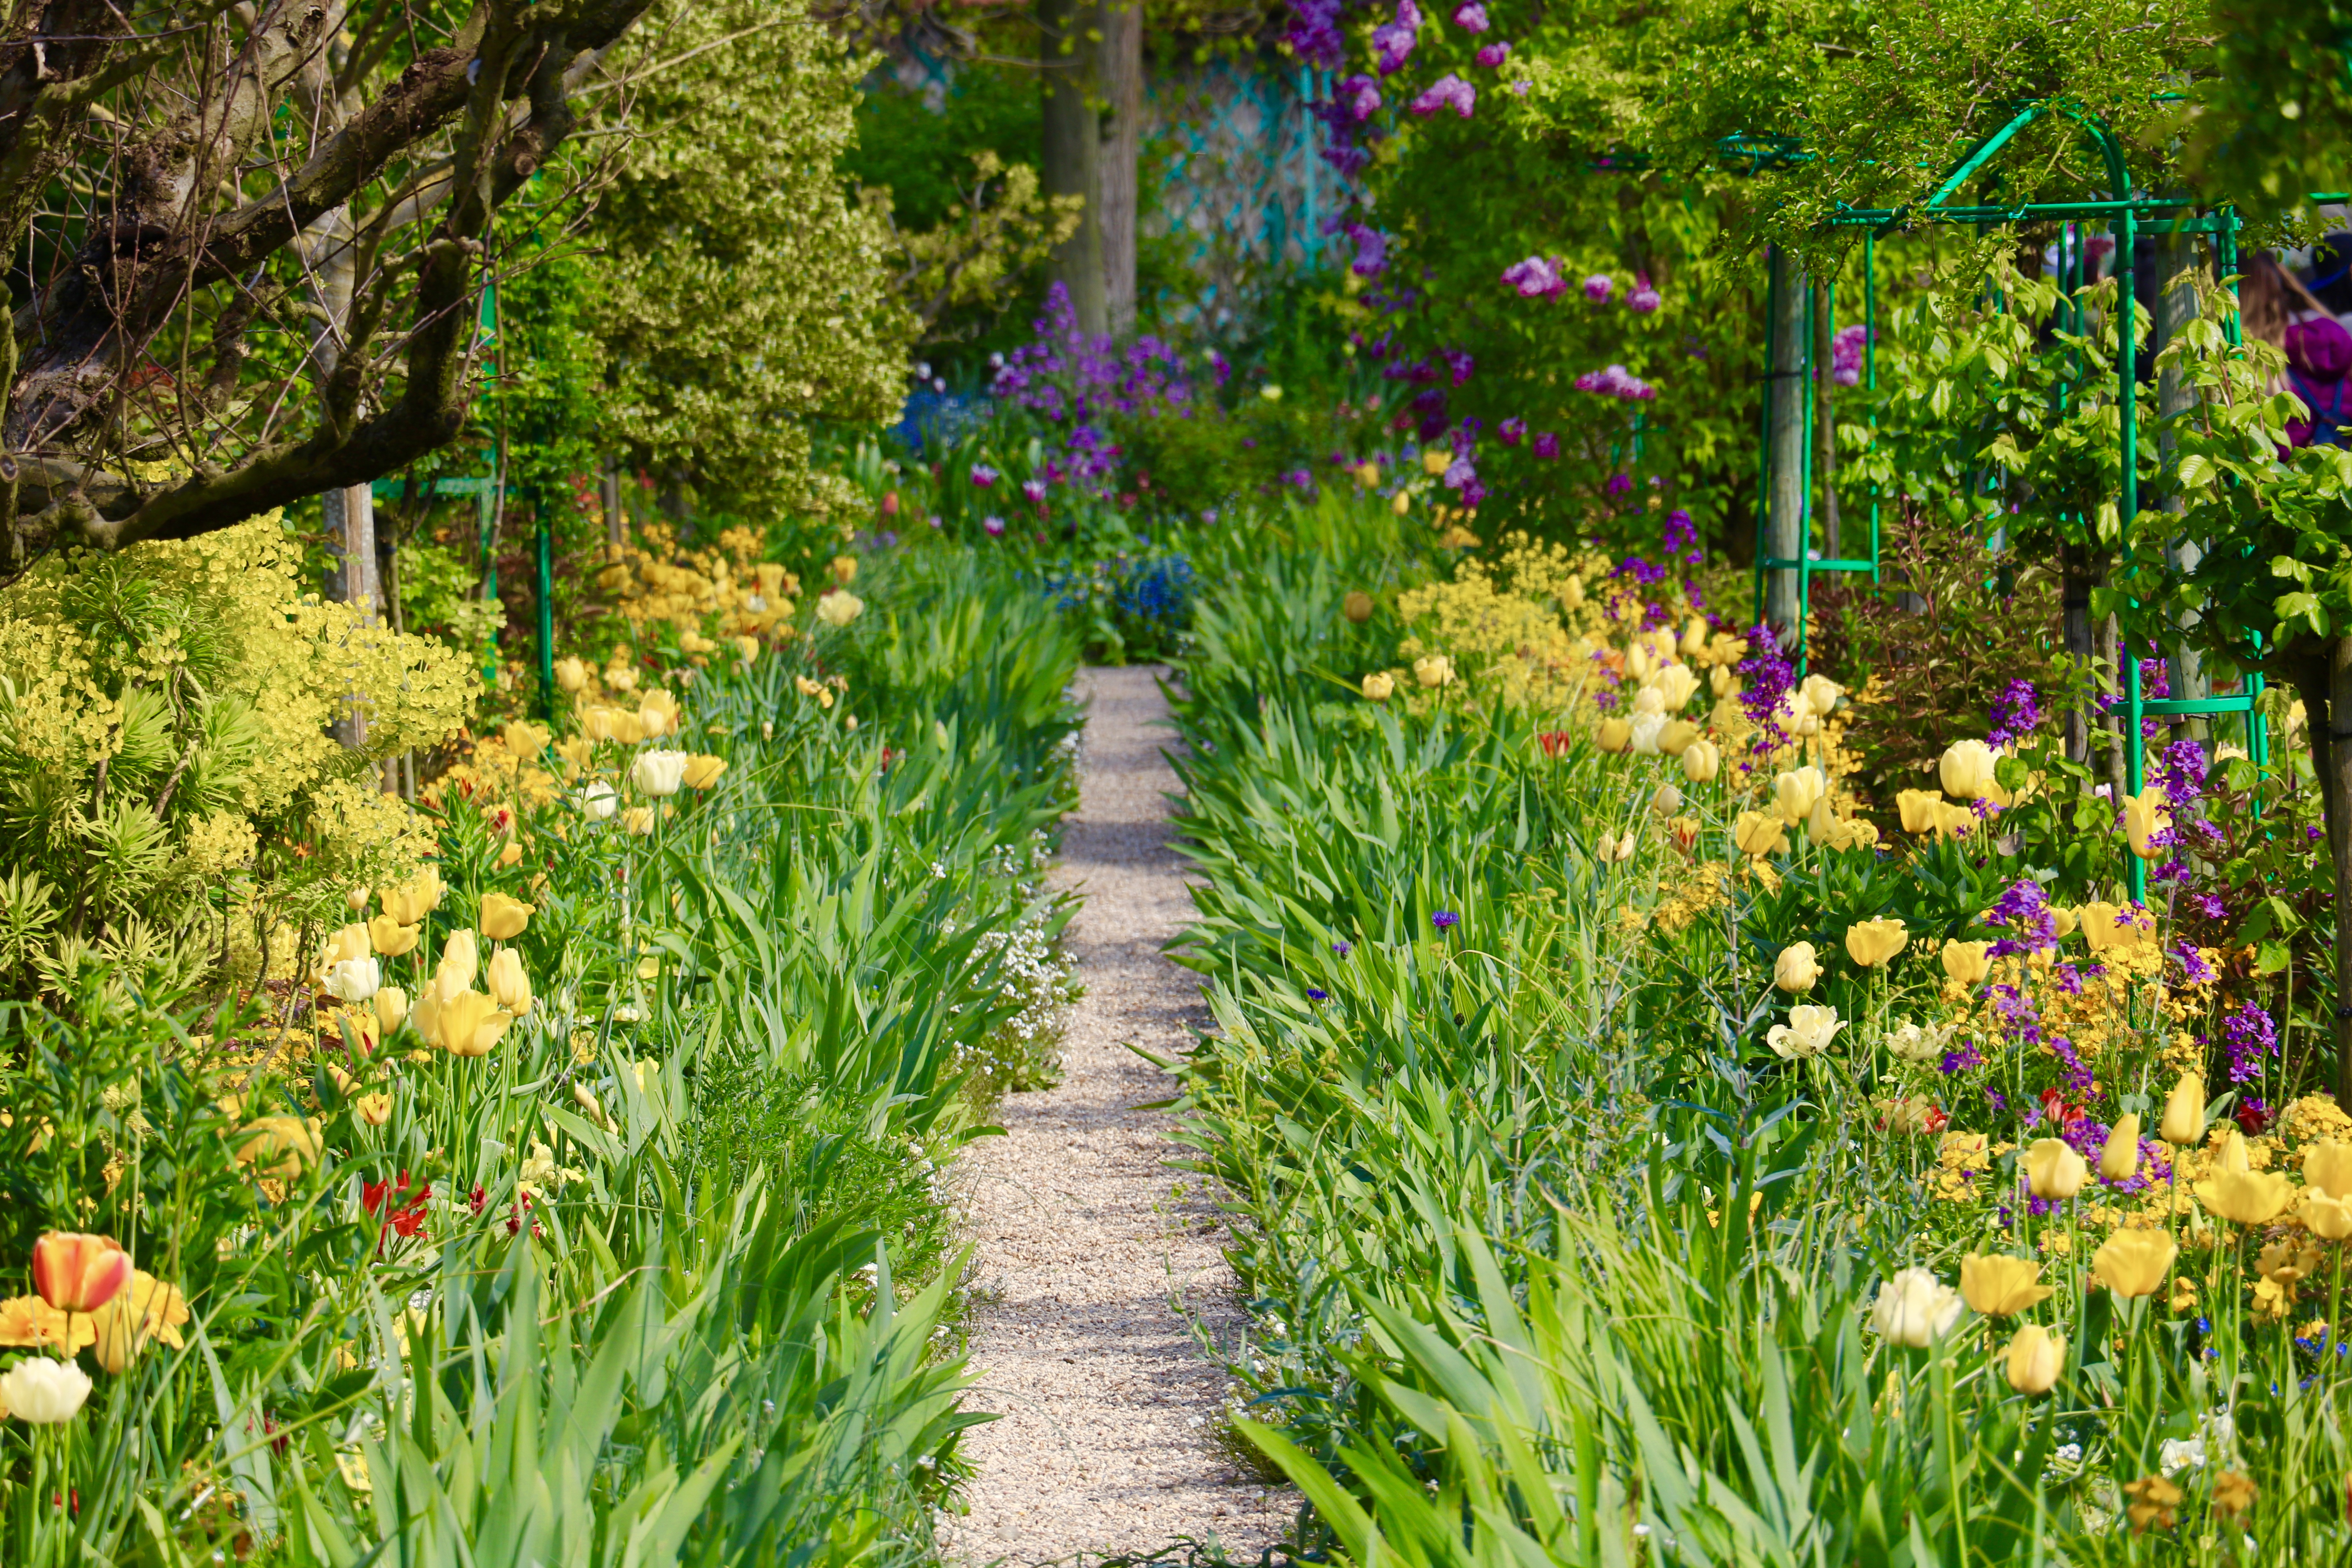 File:Claude Monetu0027s Garden In Giverny, France, April 2017